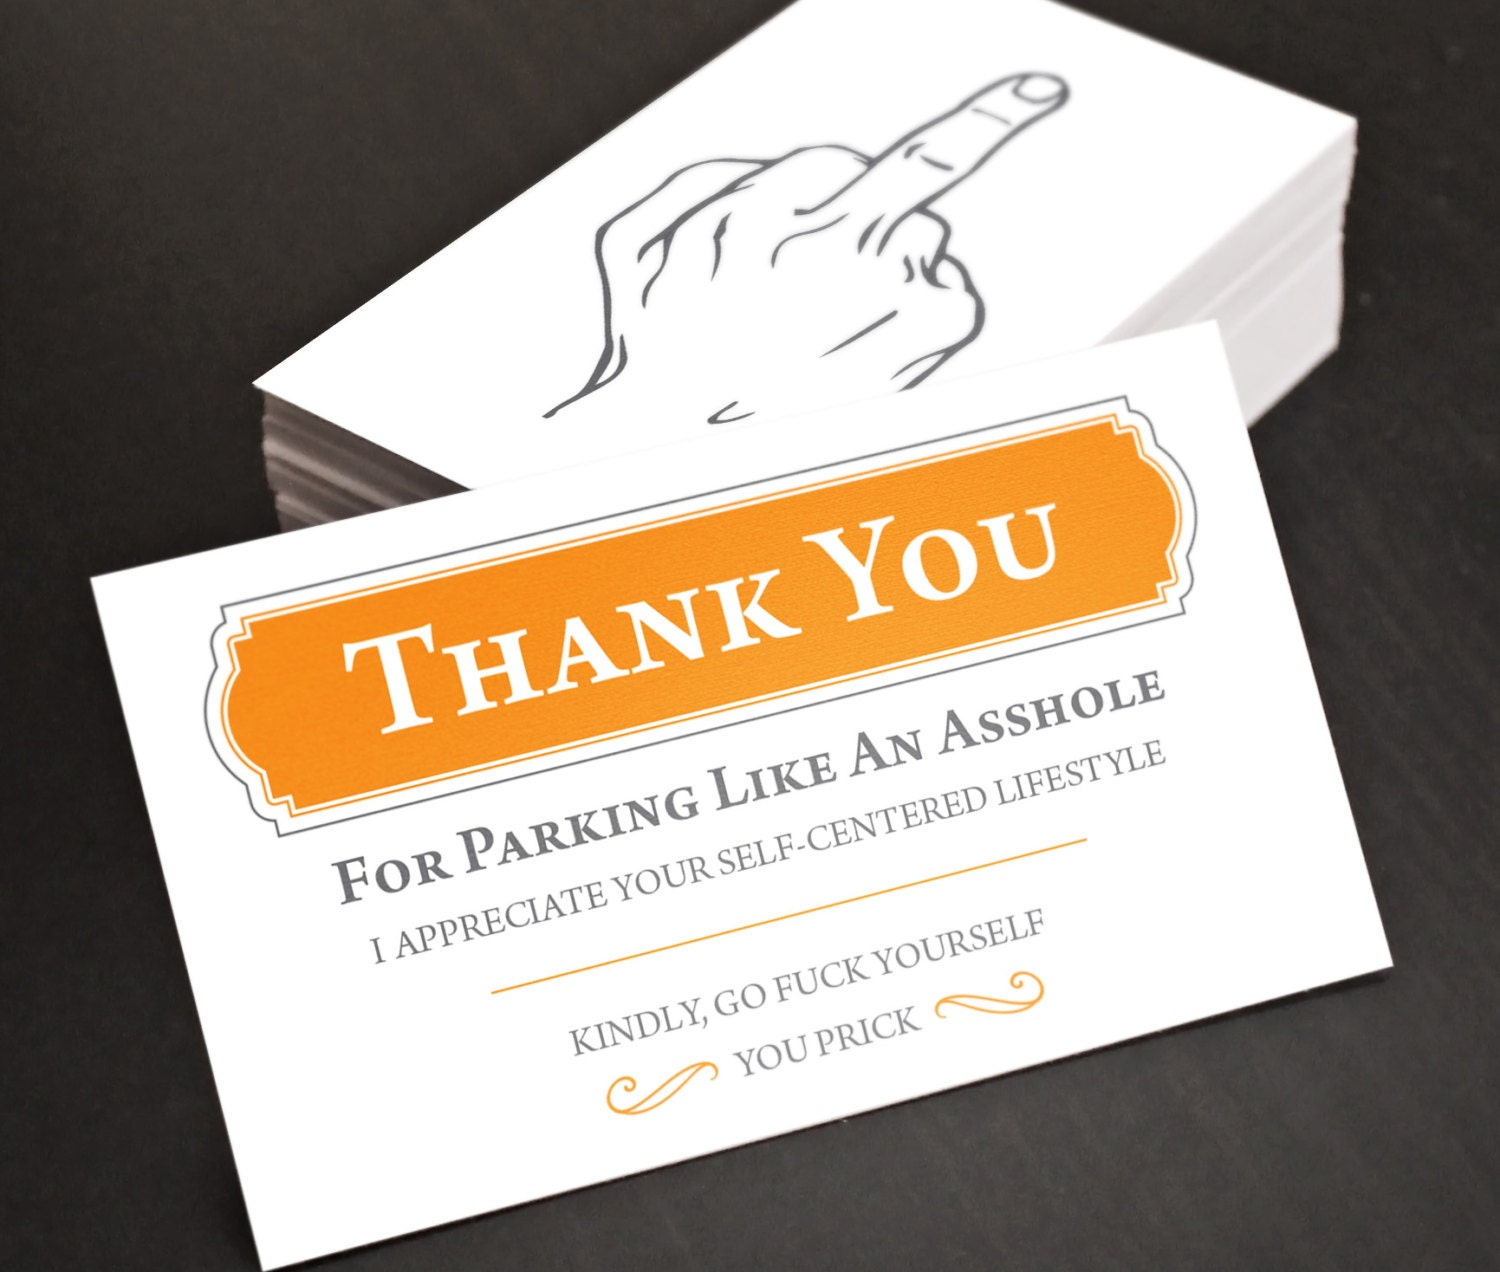 Bad parking cards middle finger funny budget gift for dad zoom solutioingenieria Gallery